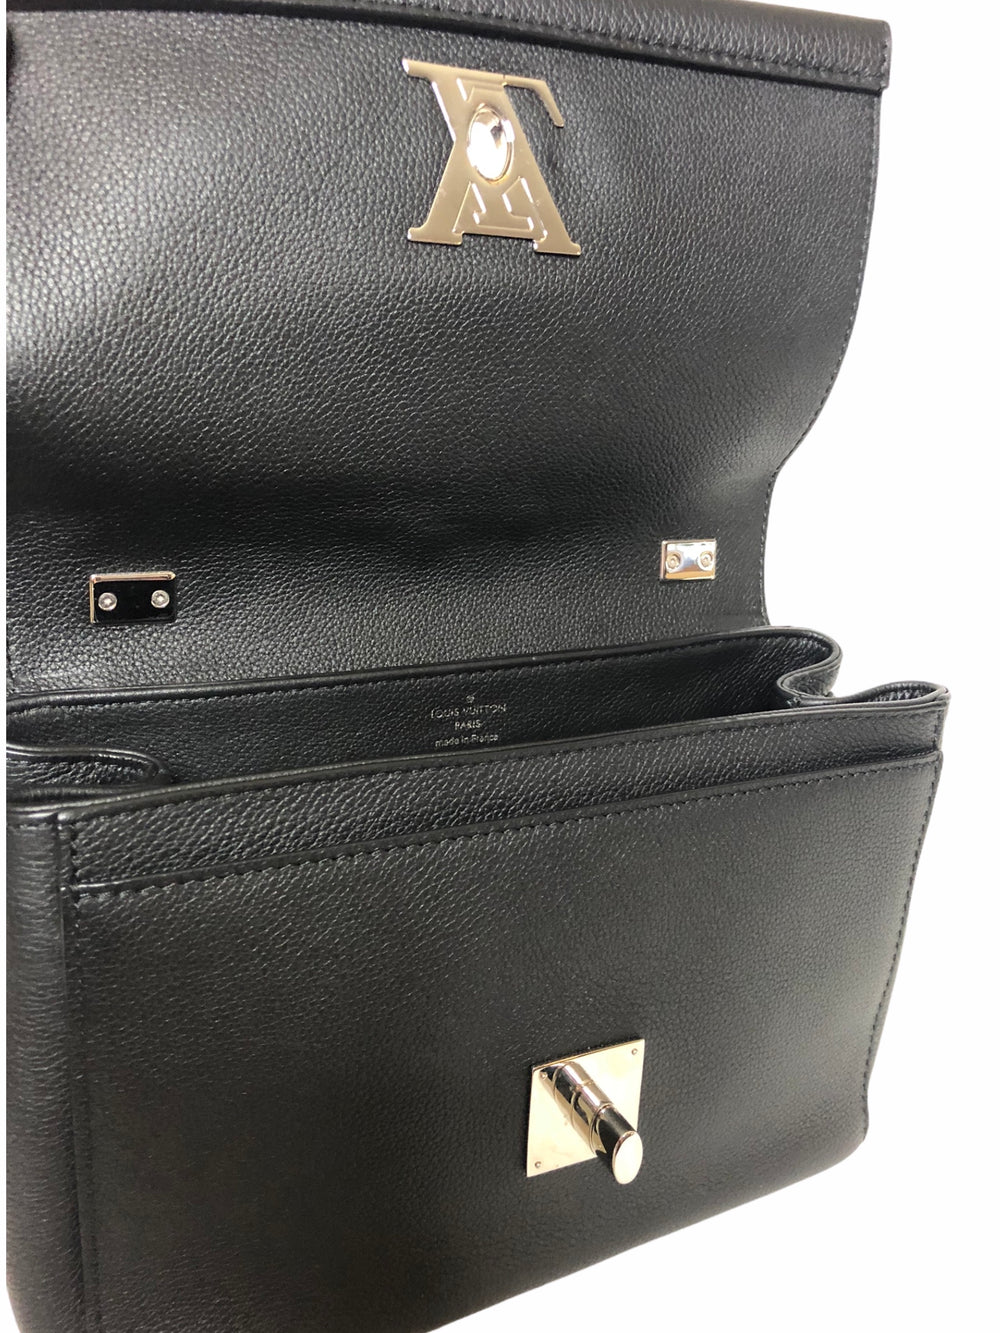 Louis Vuitton Black Calfskin Leather